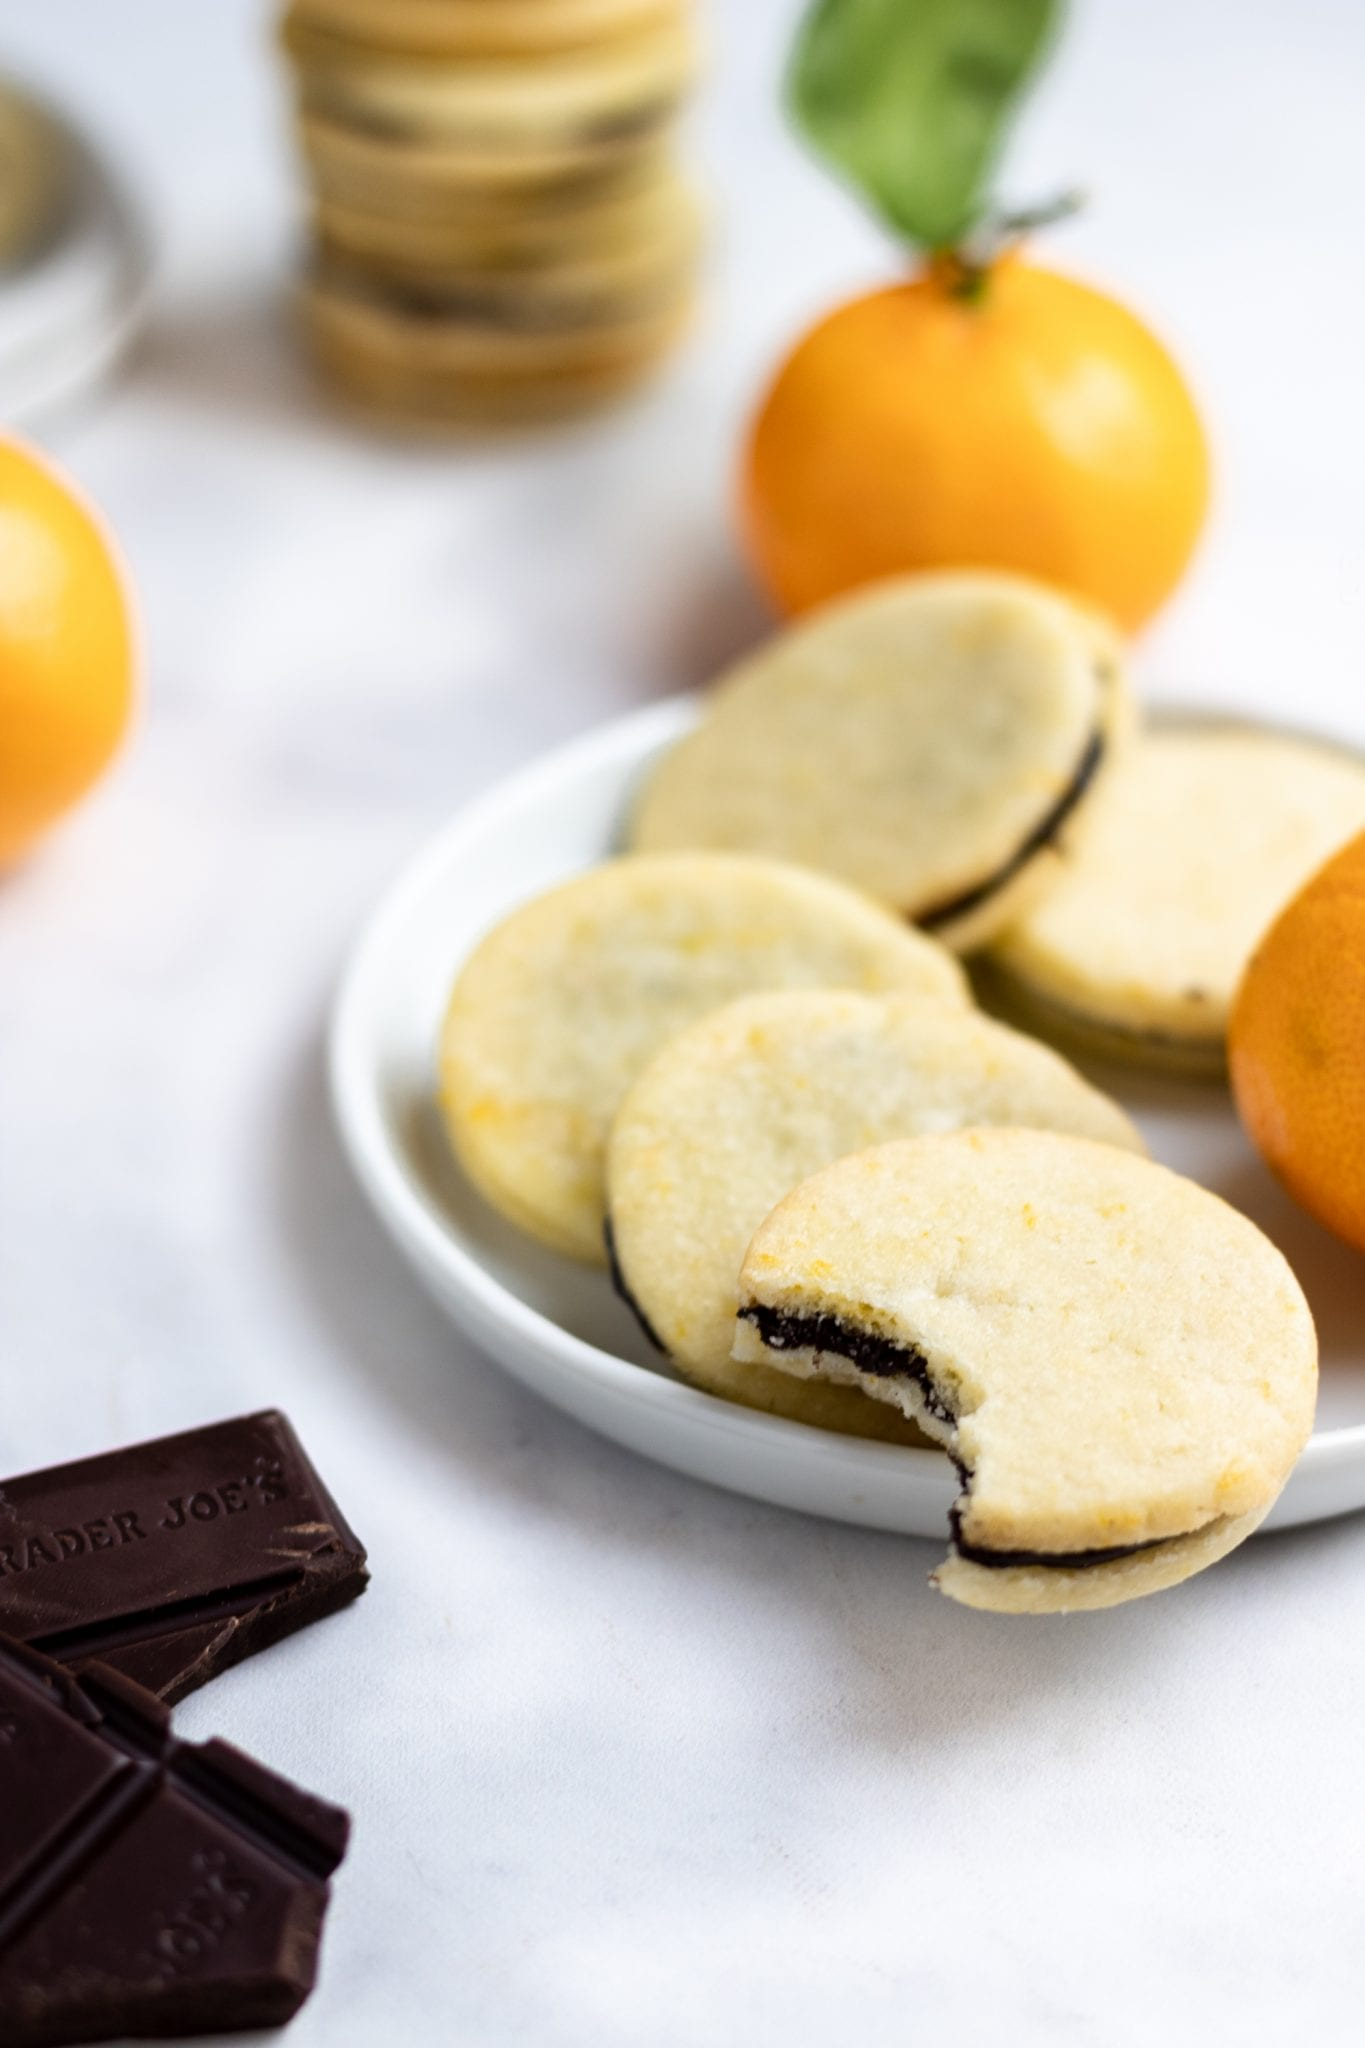 five chocolate orange sandwich cookies on a white plate with a piece of chocolate and small oranges in the background